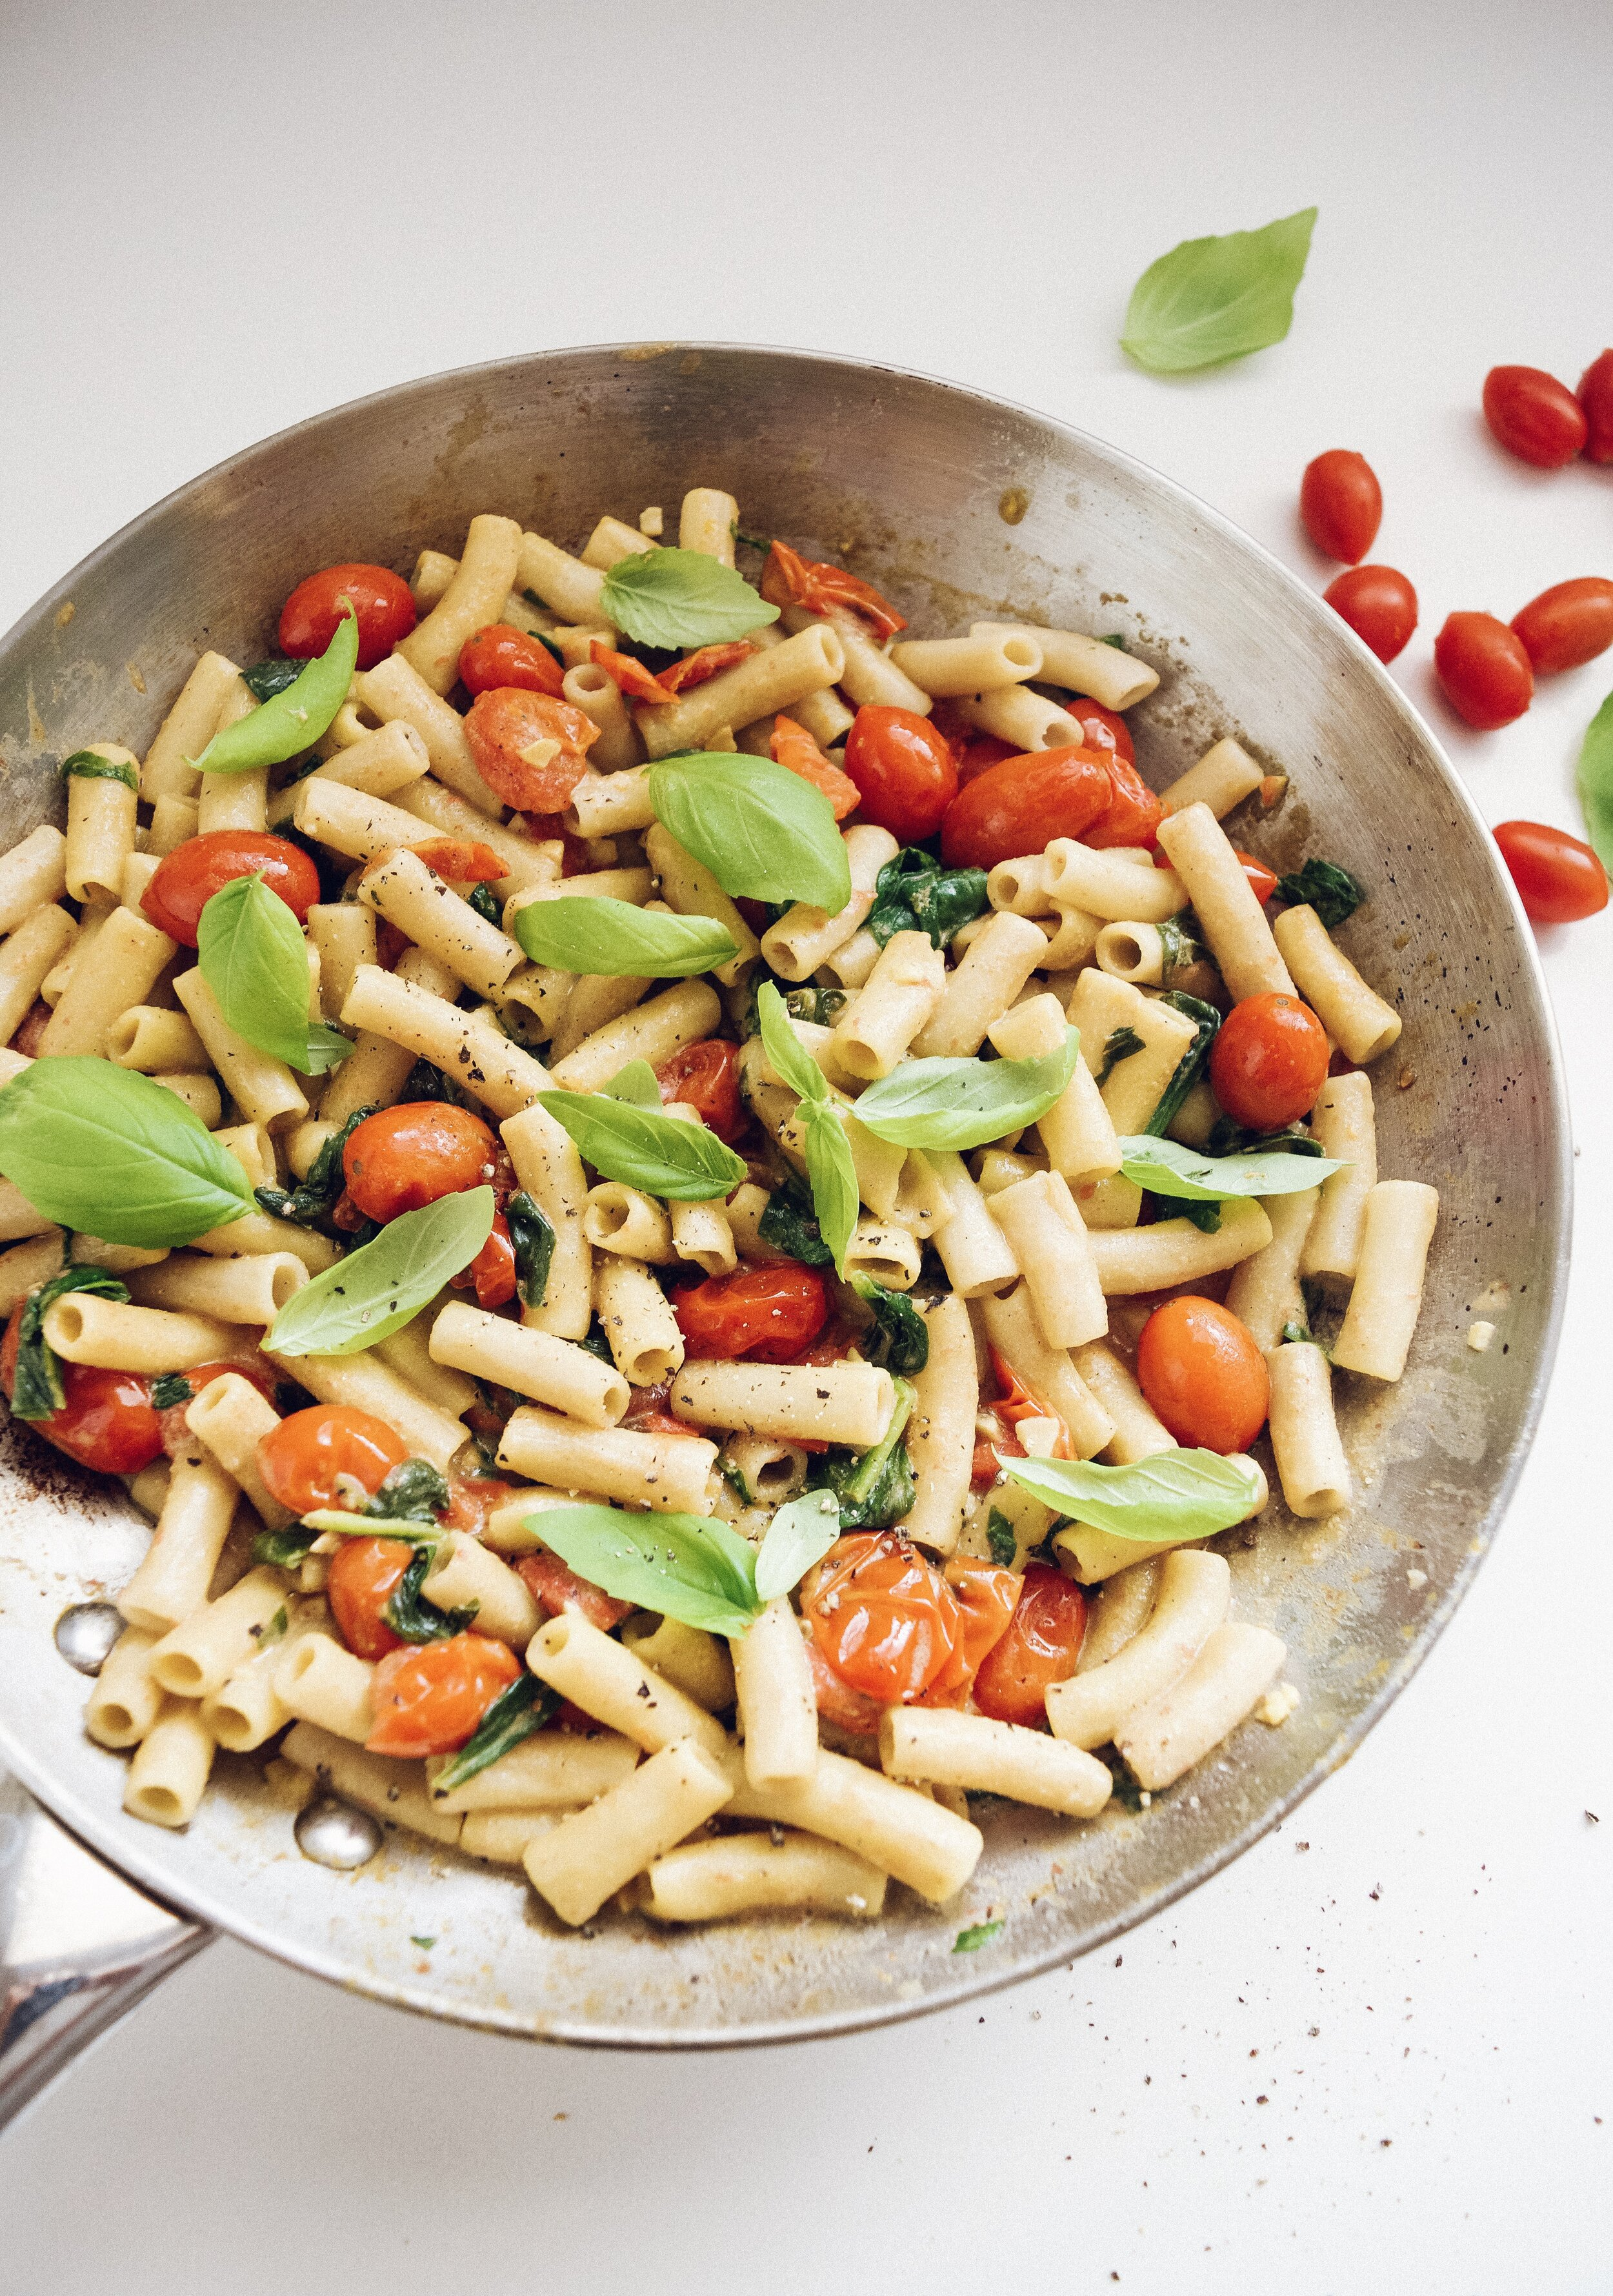 20-MINUTE-CREAMY-VEGAN-PENNE-PASTA-SPINACH-TOMATOES-HERB.JPG